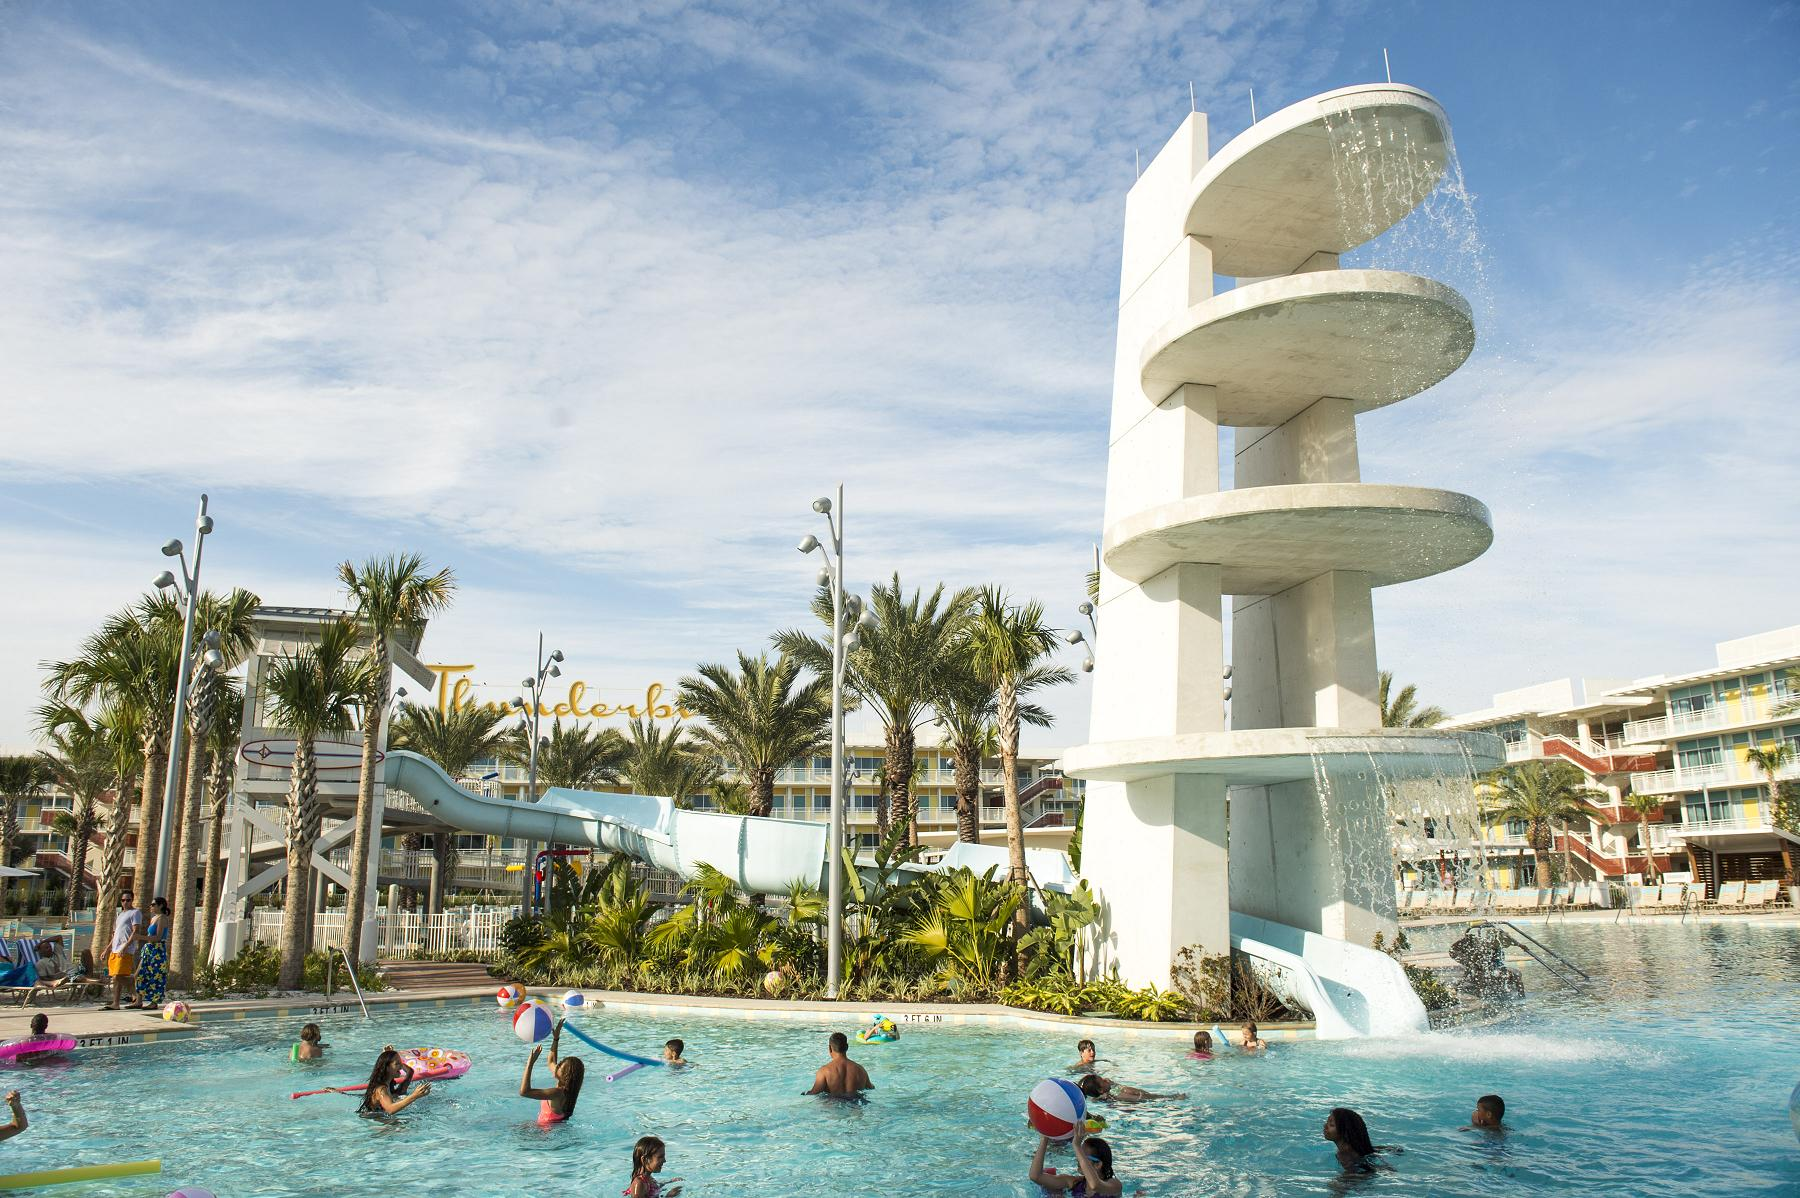 Cabana Bay Beach Resort Rates